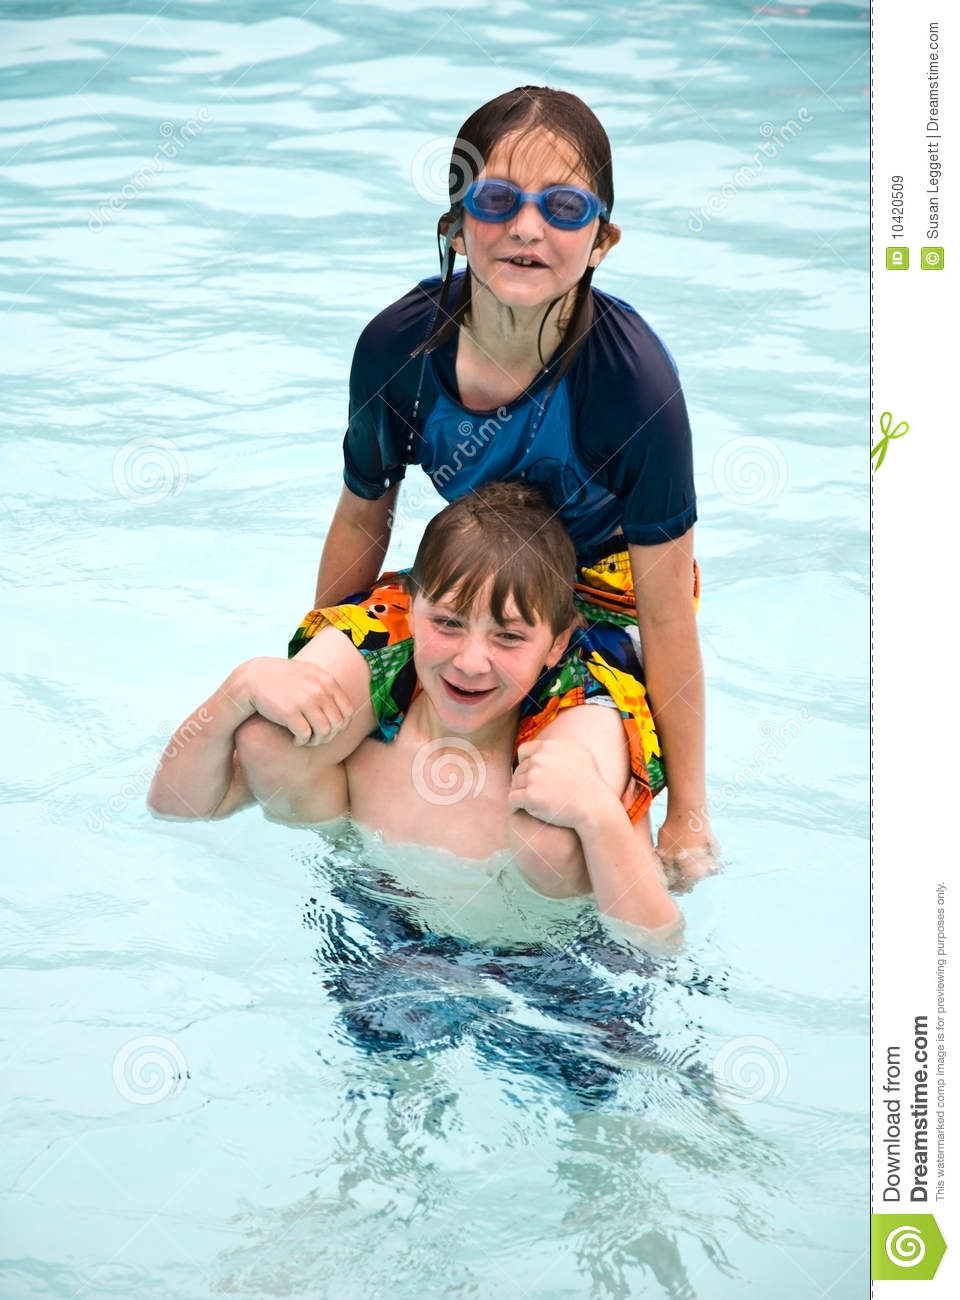 Naughty Boy And Girl Playing In Water Royalty Free Stock